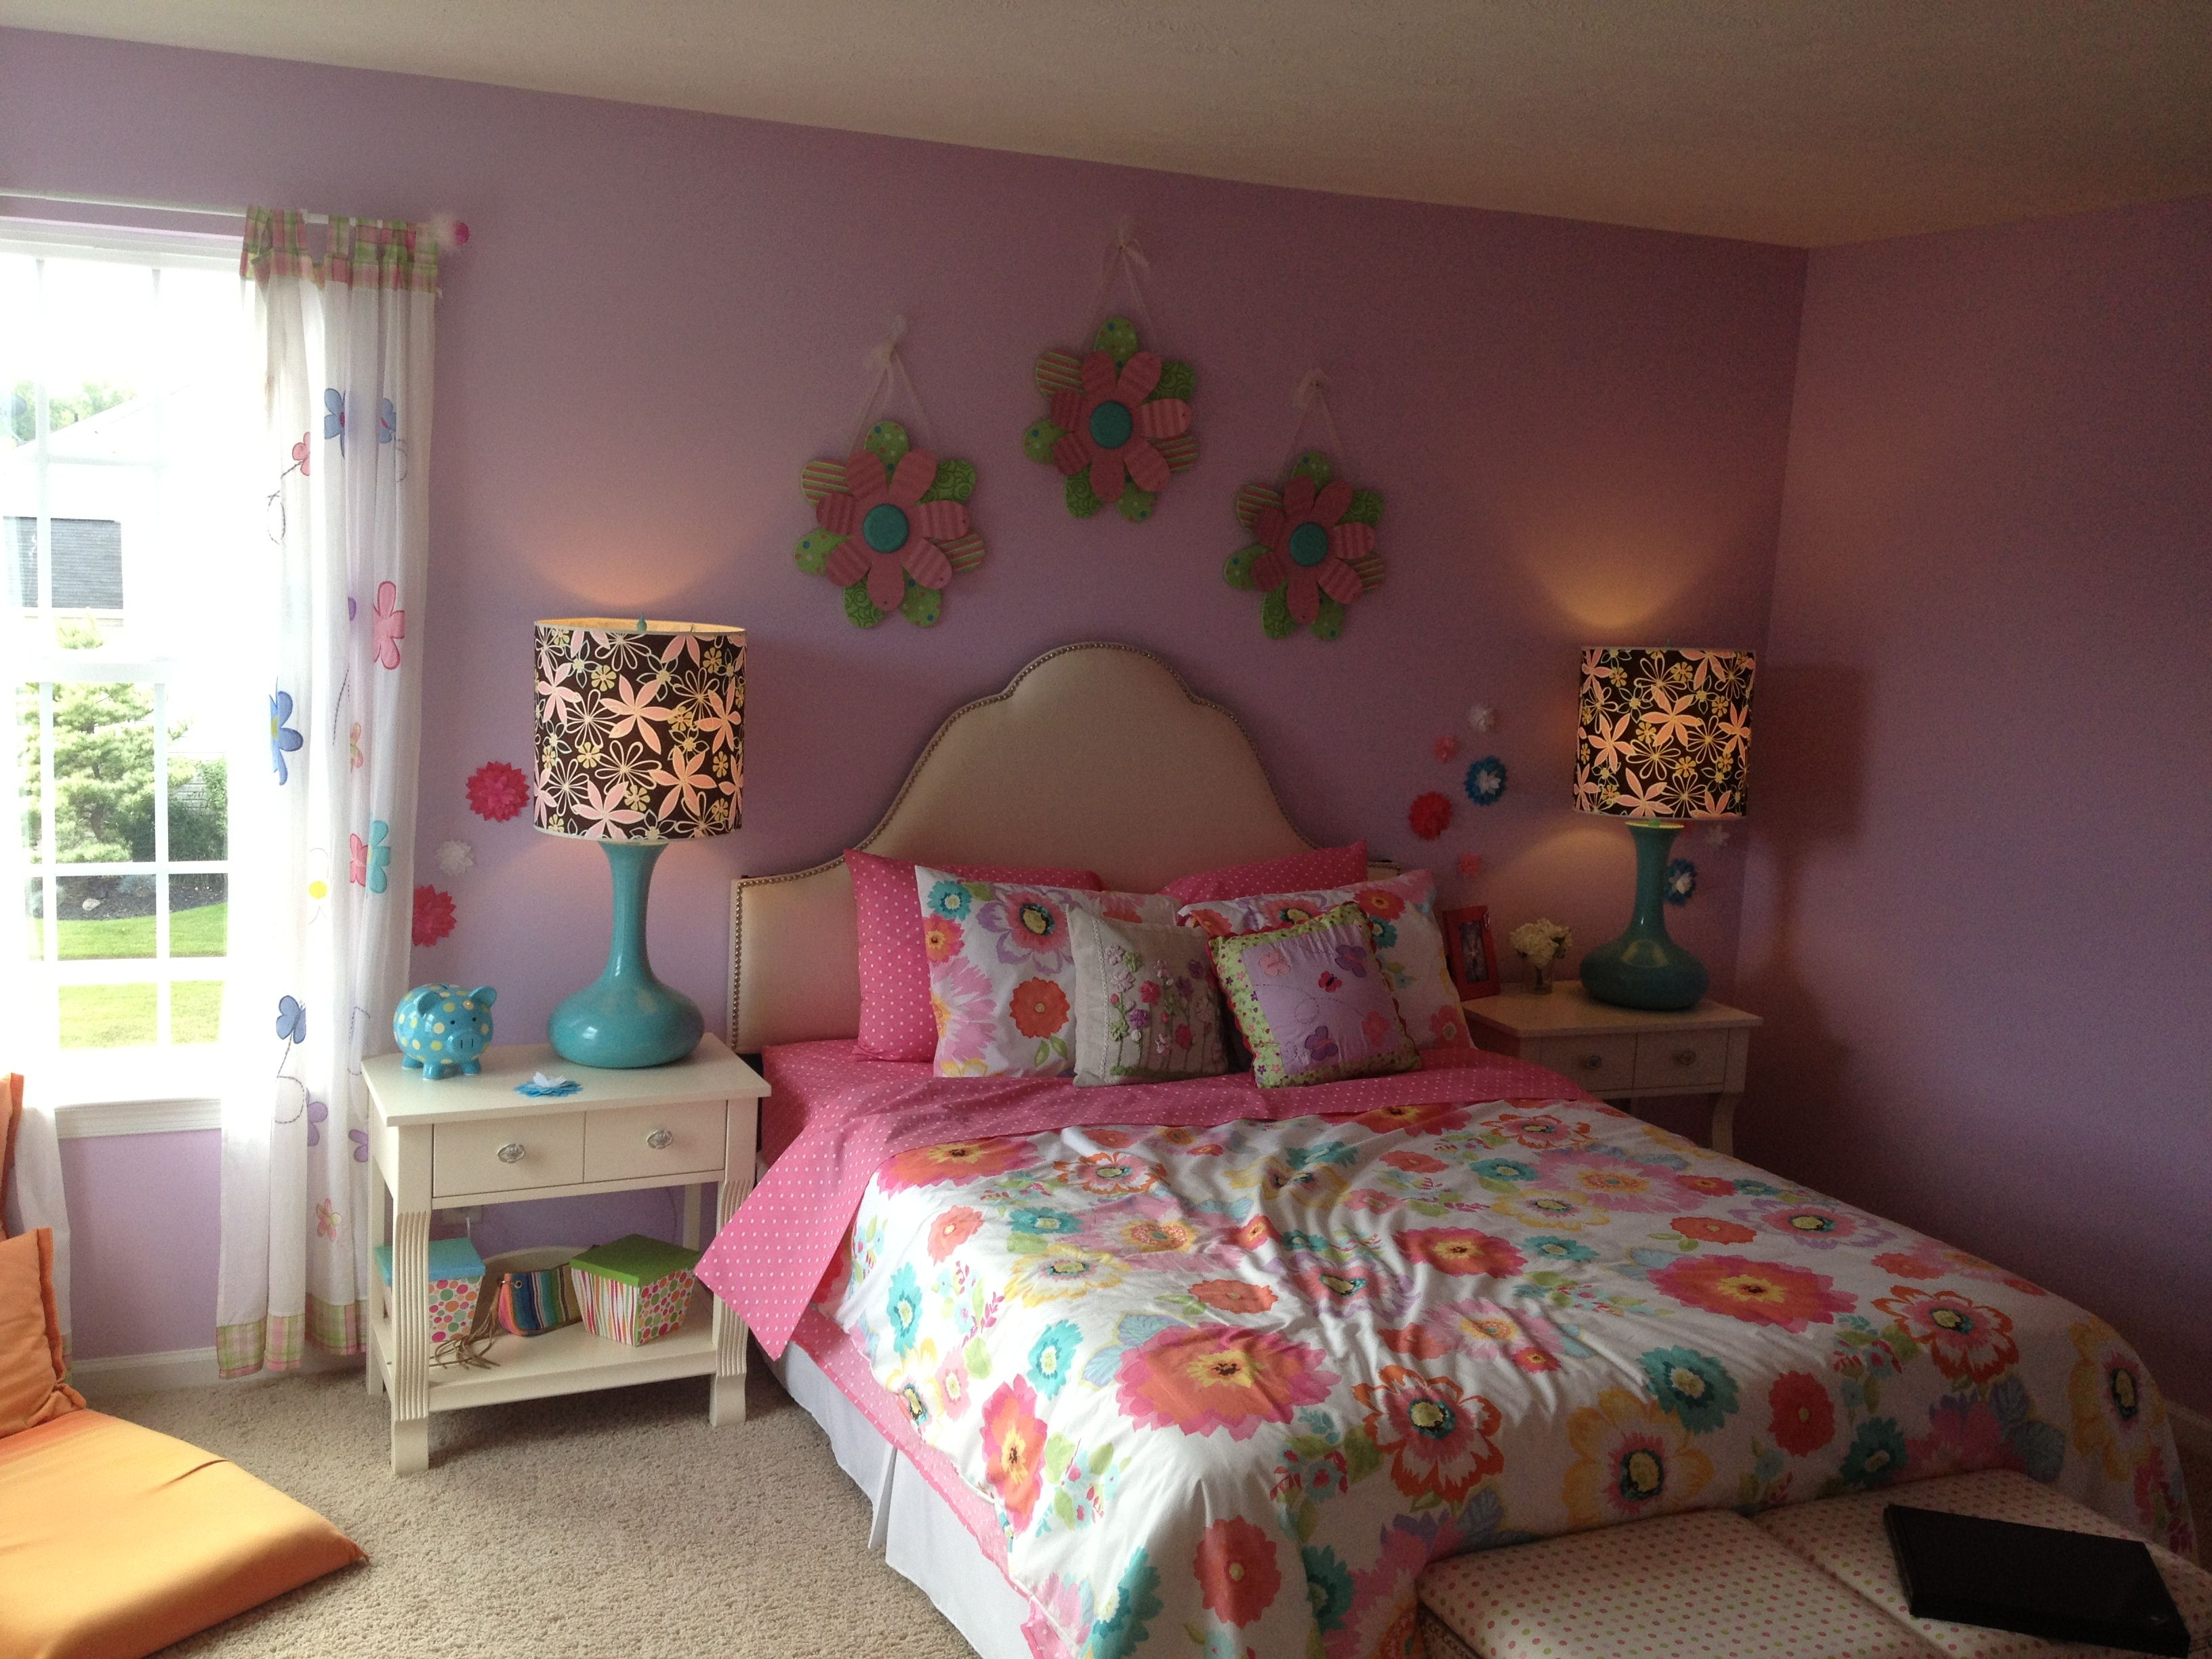 Beds For 10 Year Olds Inspiration For Our 10 Year Old Girl's Room | Elleshas